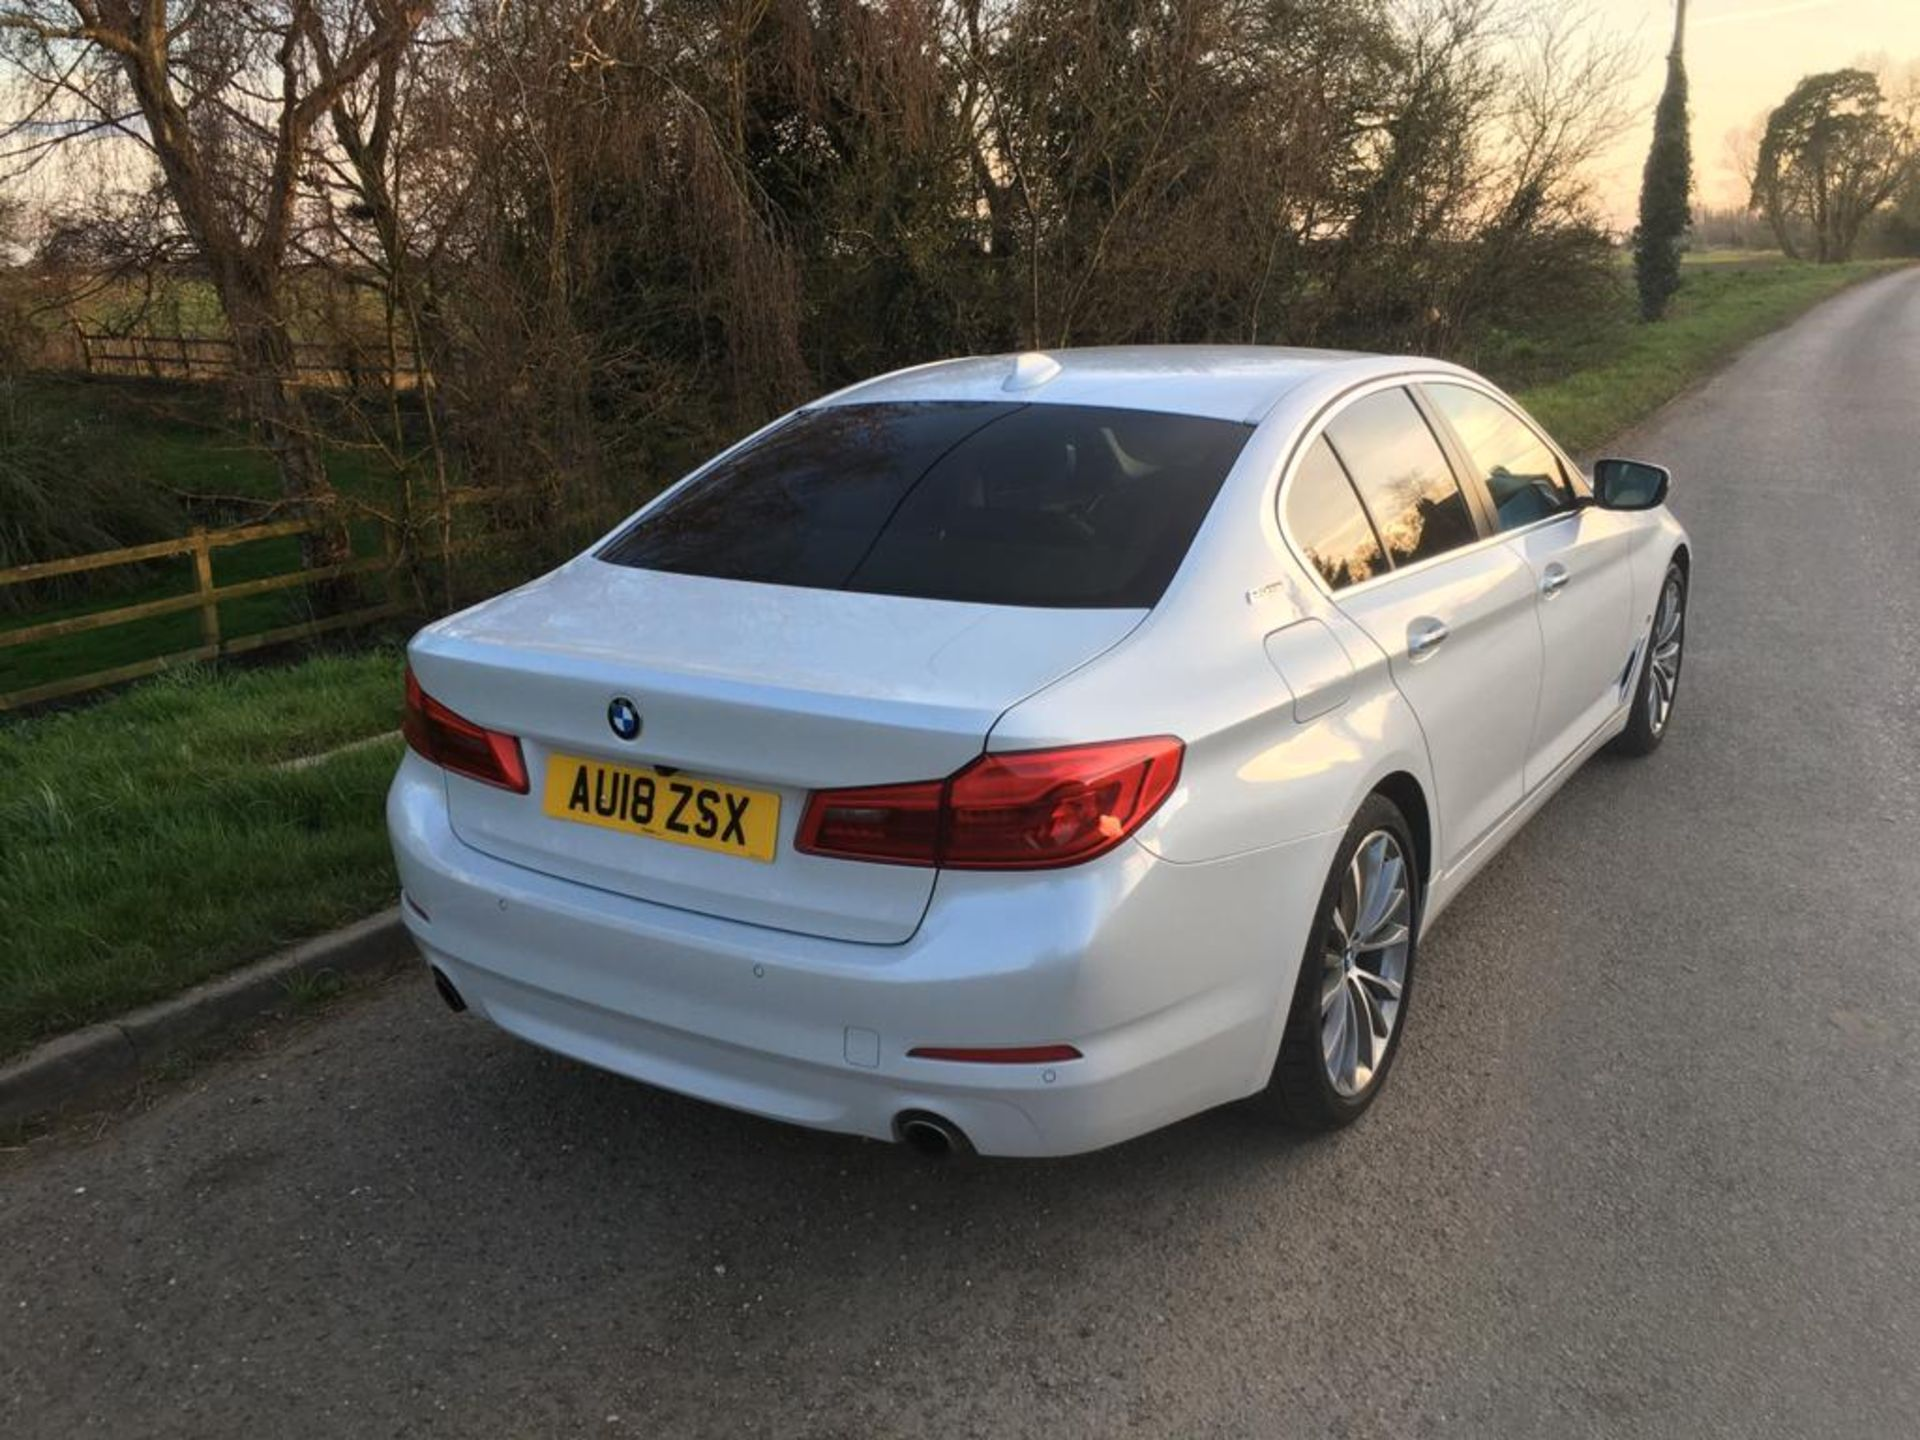 2018 BMW 530E 2.0 SE HYBIRD SALOON AUTOMATIC - Image 4 of 34